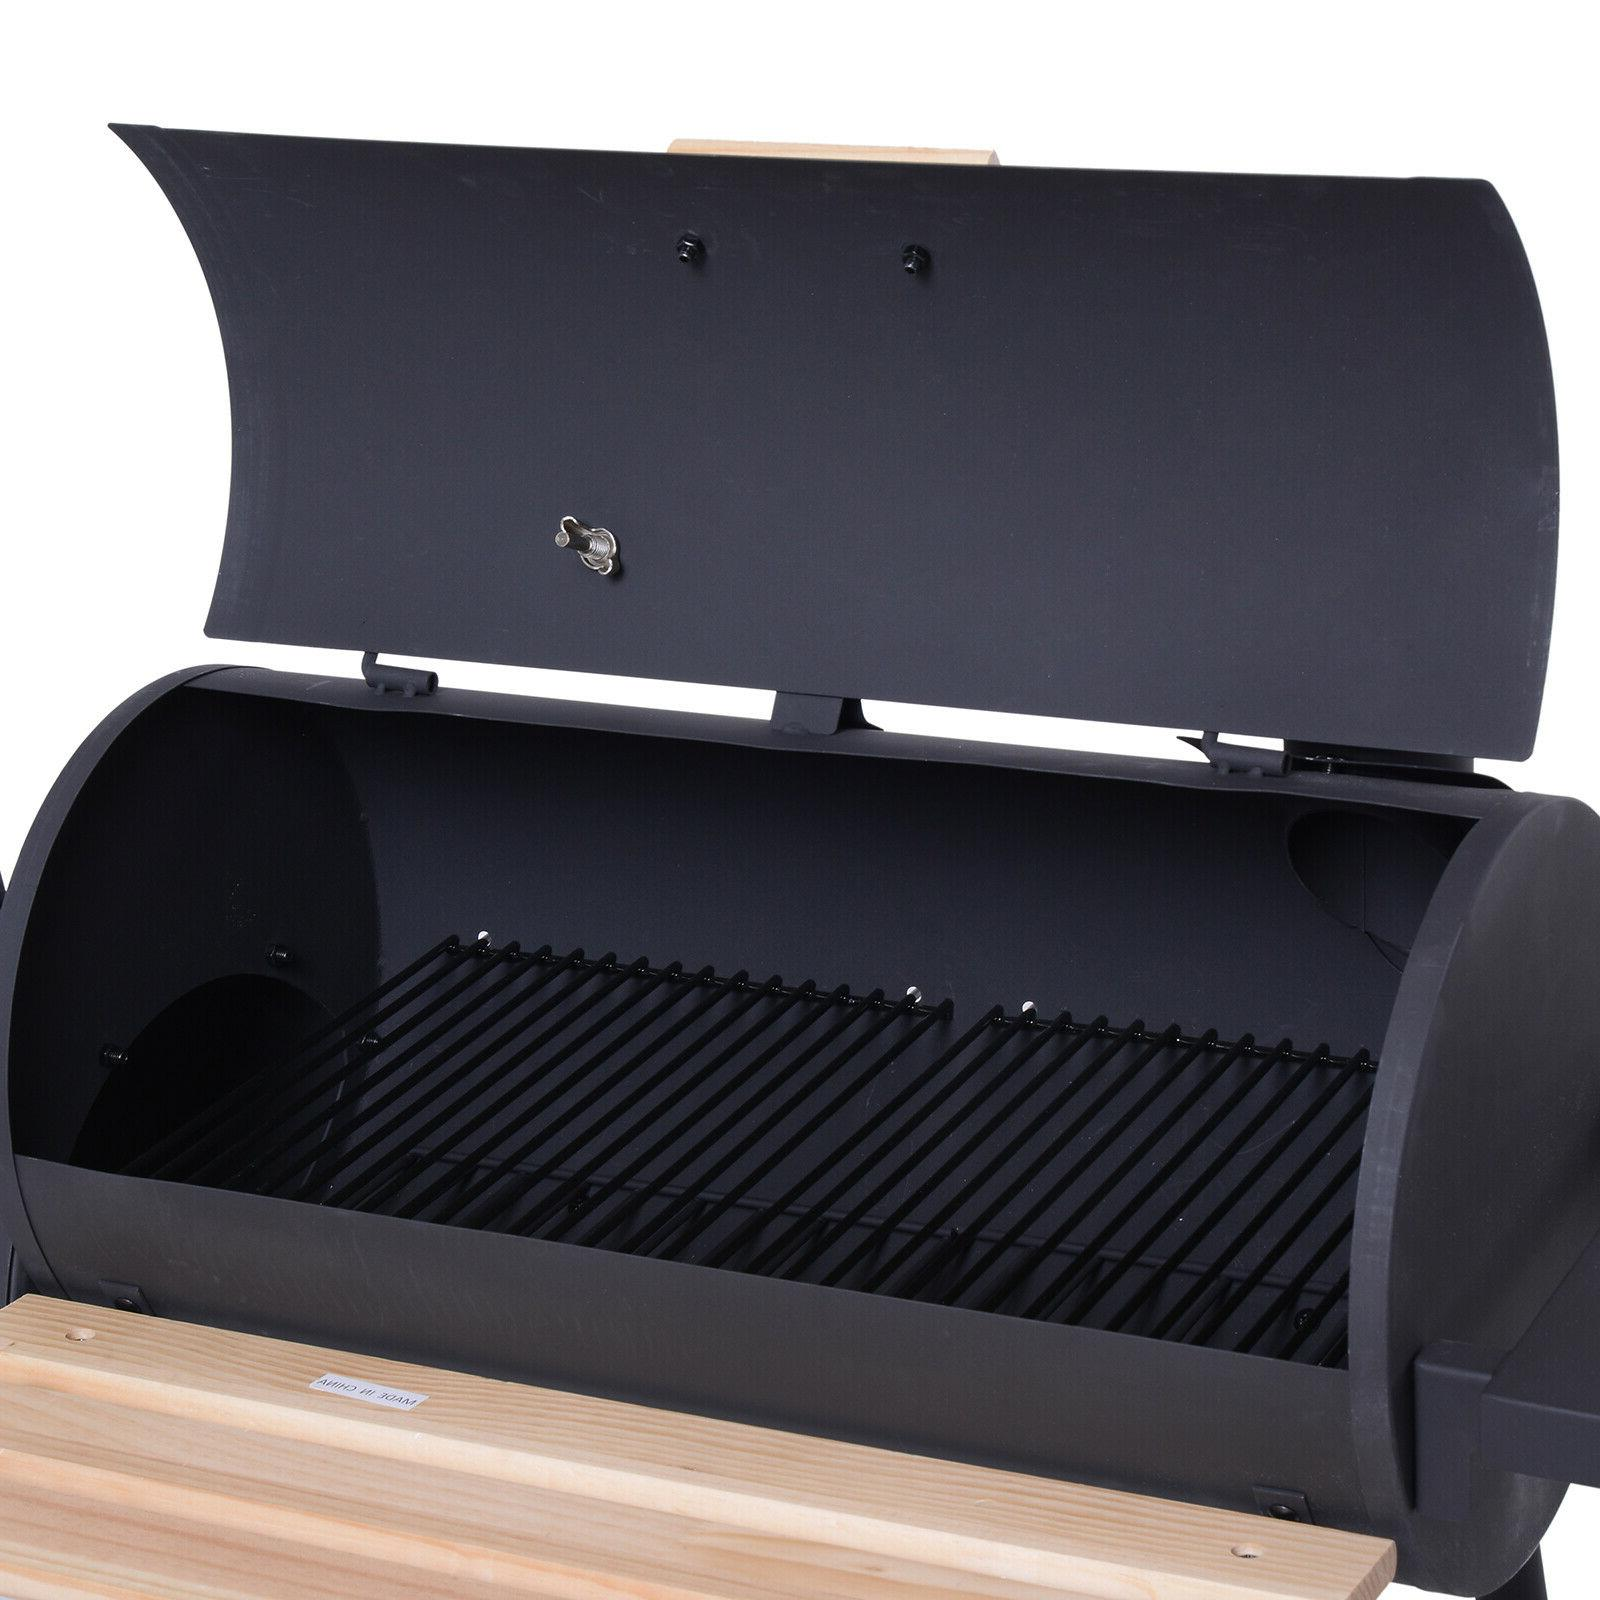 Outsunny Backyard Charcoal Grill and Offset Combo